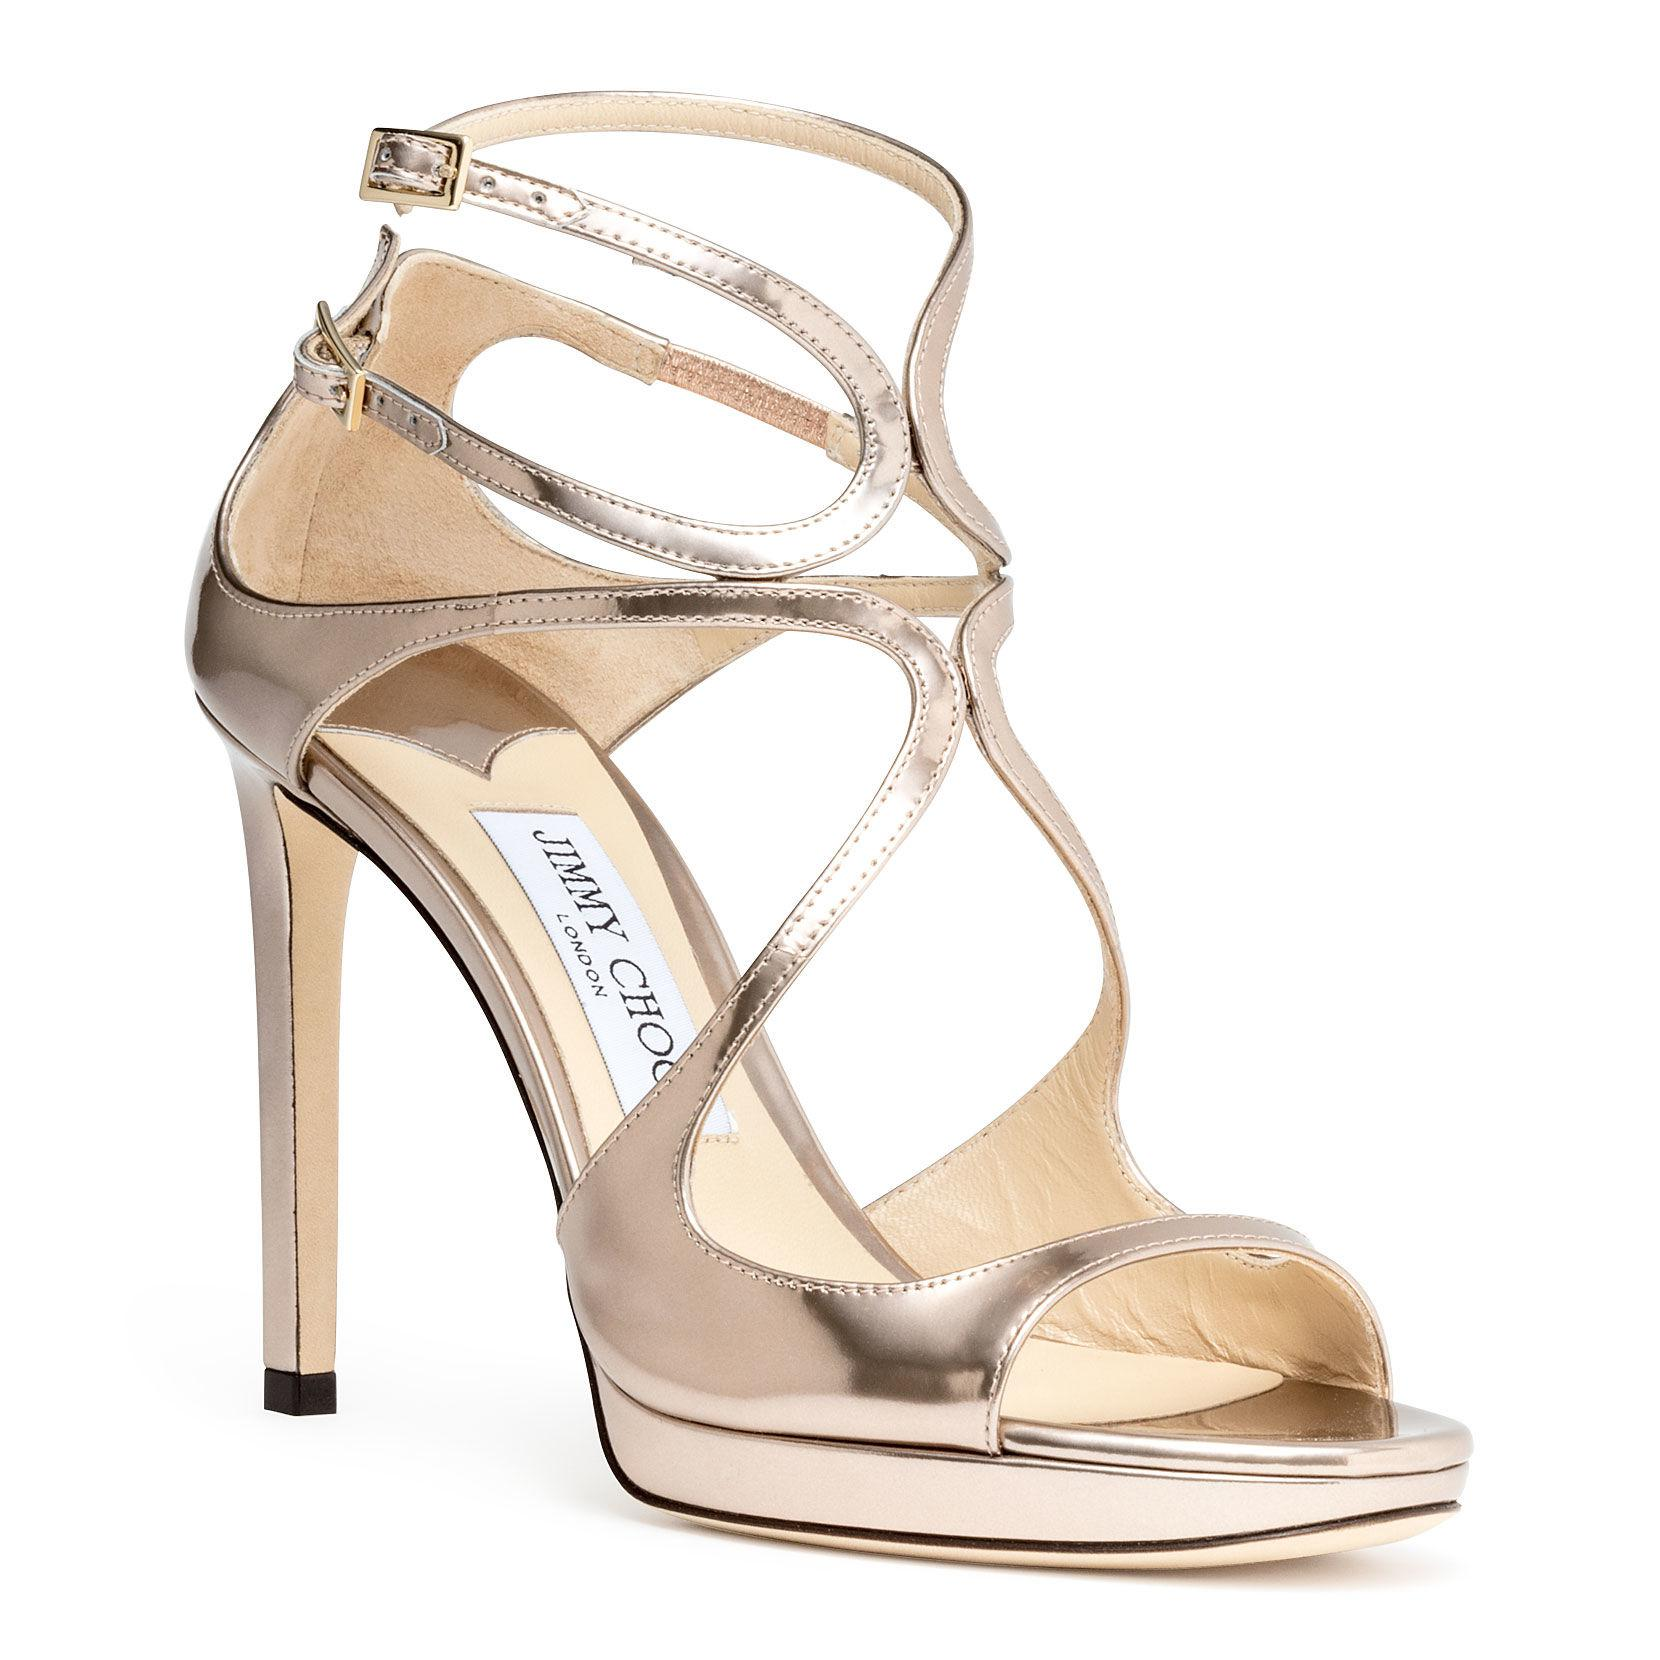 a6e580c06e4c Jimmy Choo - Metallic Lance 100 Gold Leather Sandals - Lyst. View fullscreen